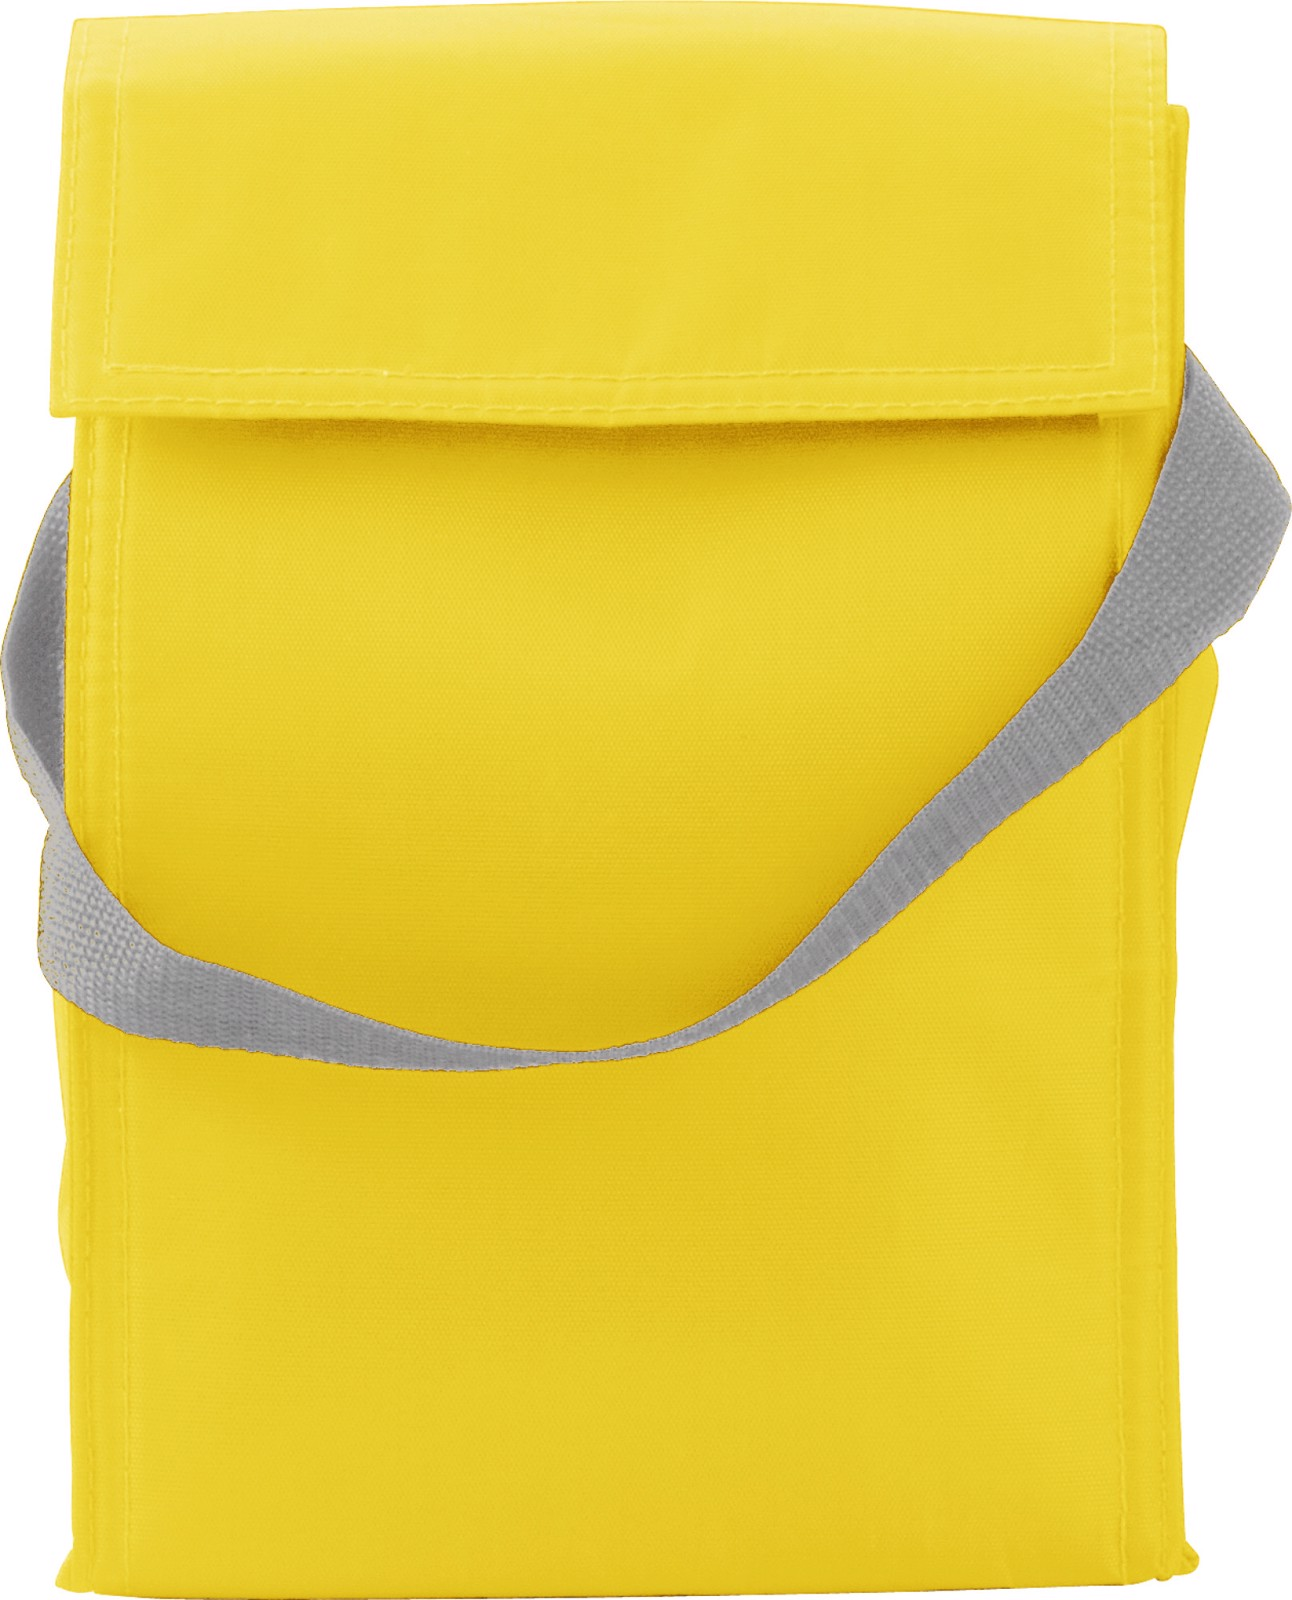 Polyester  (420D) cooler/lunch bag - Yellow